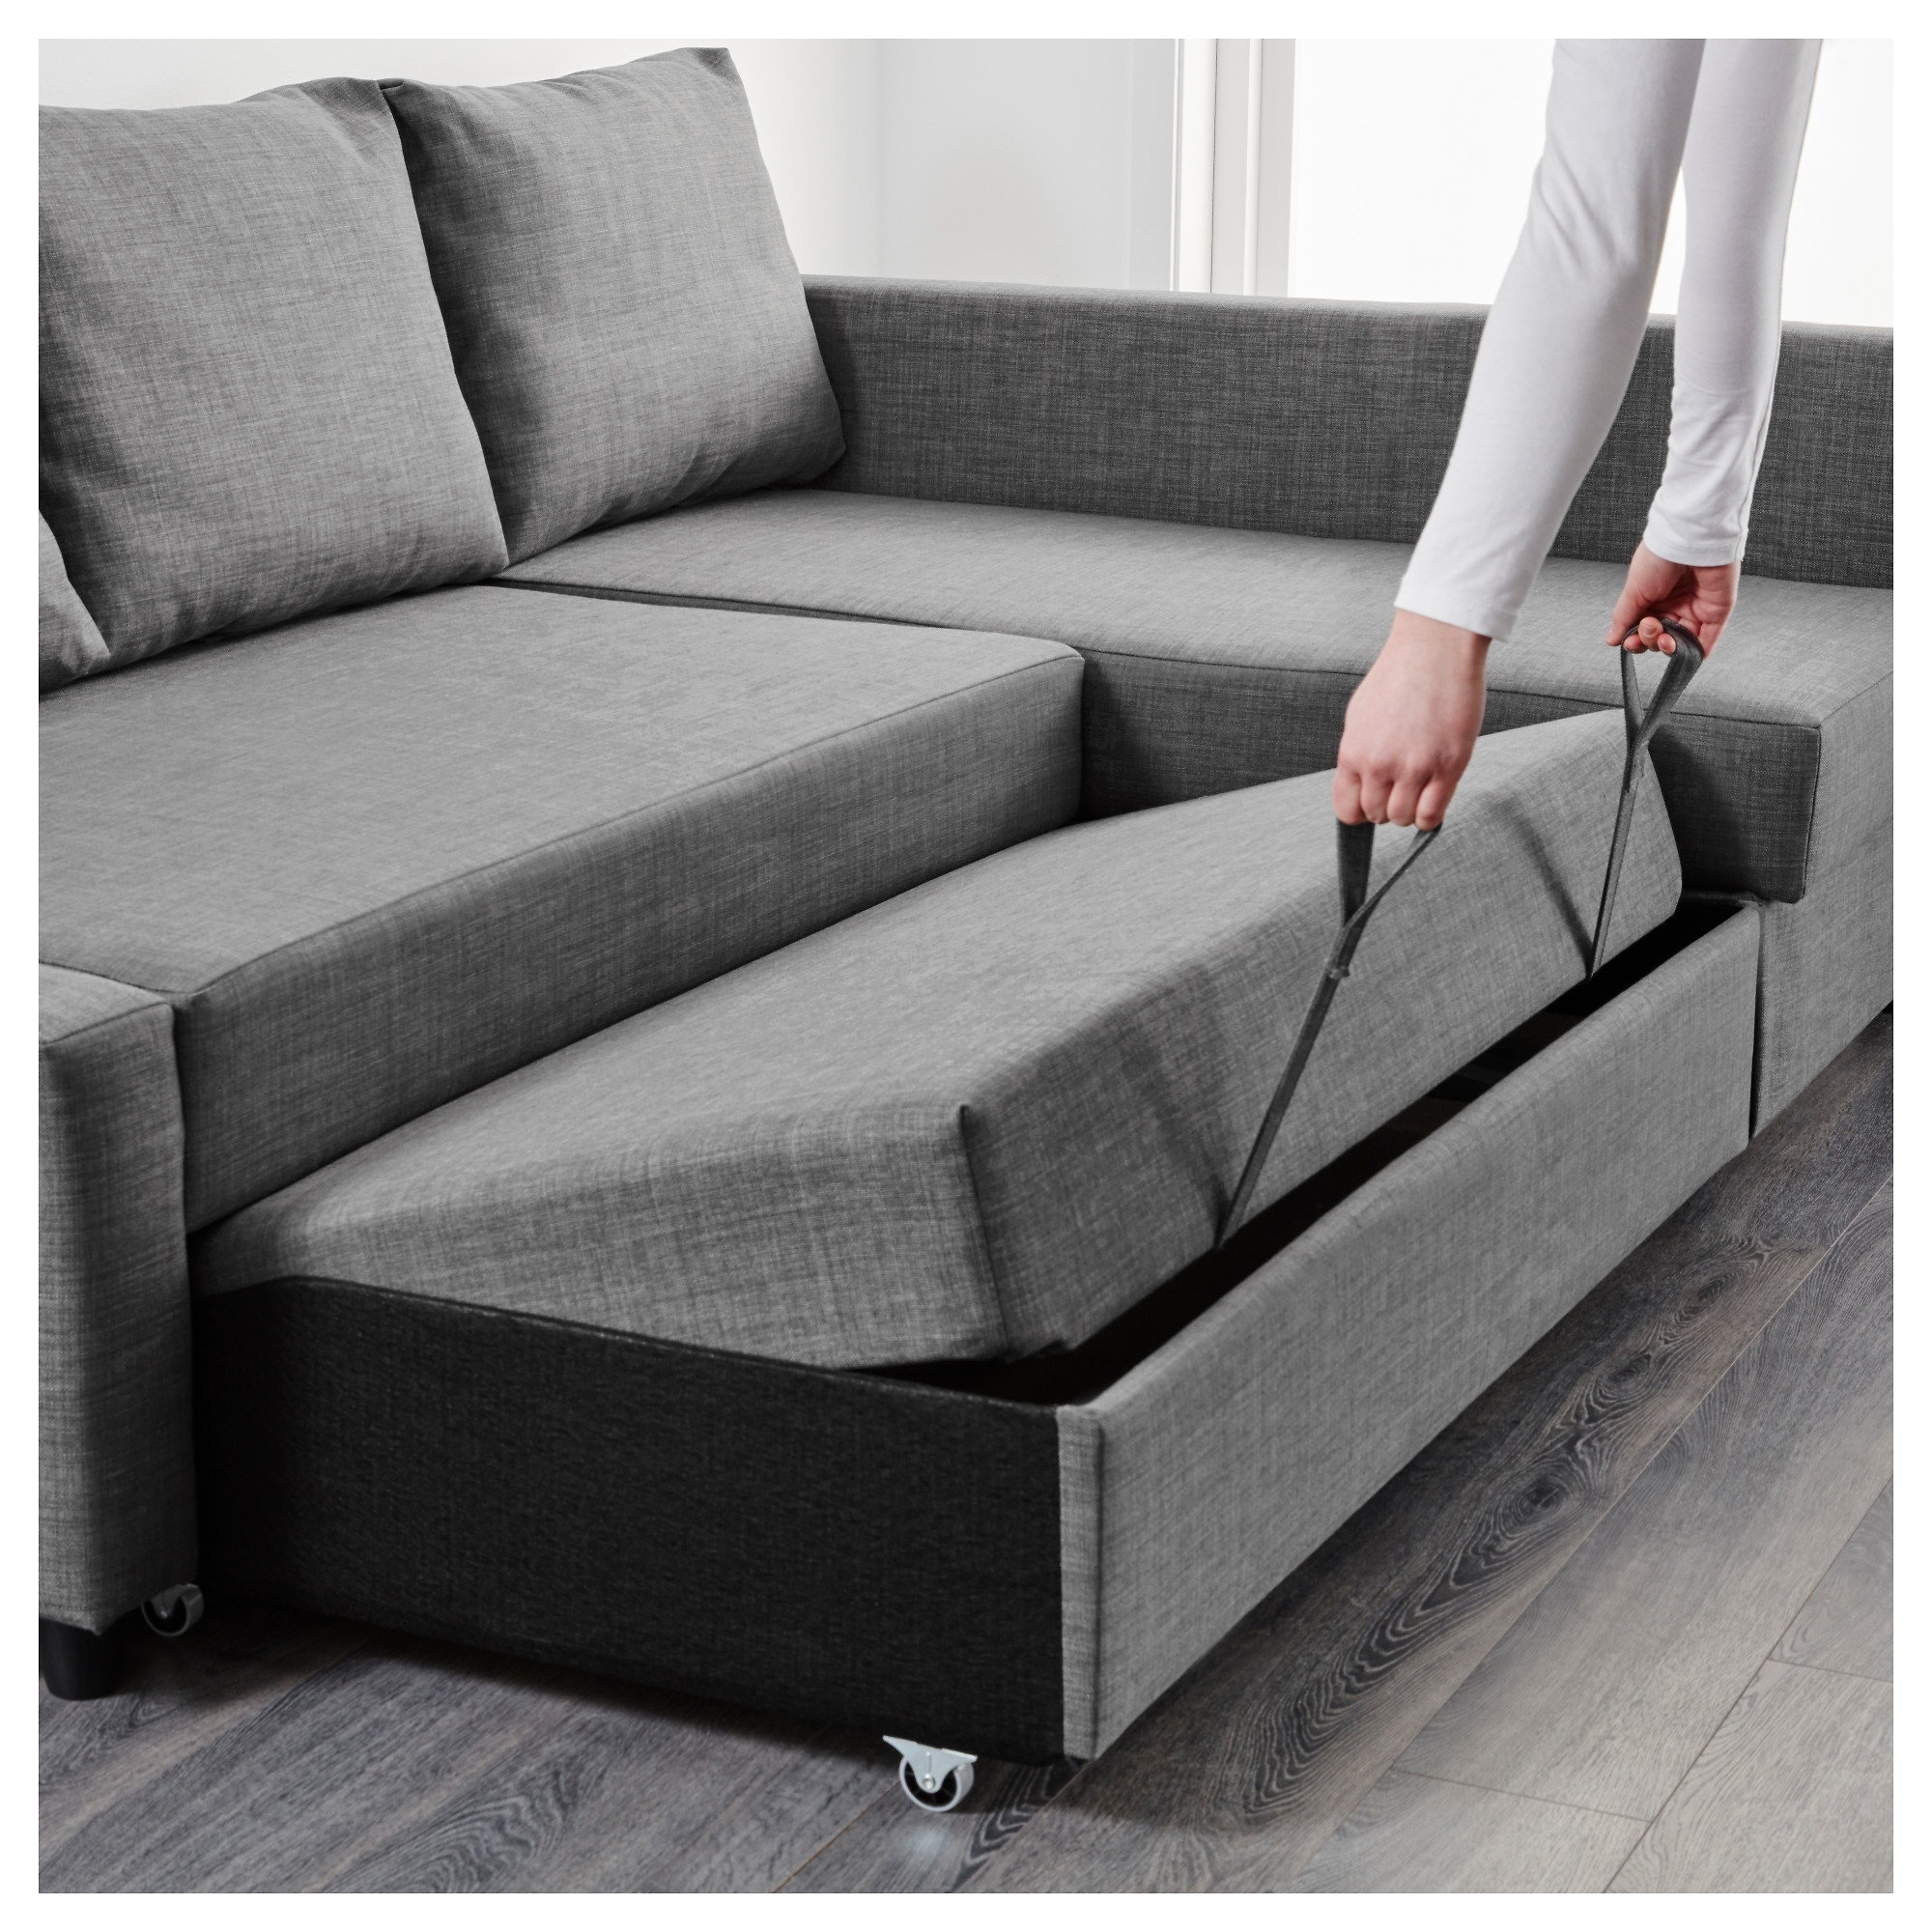 Fashionable Grey Sofas With Chaise For Friheten Corner Sofa Bed With Storage Skiftebo Dark Grey – Ikea (View 11 of 15)